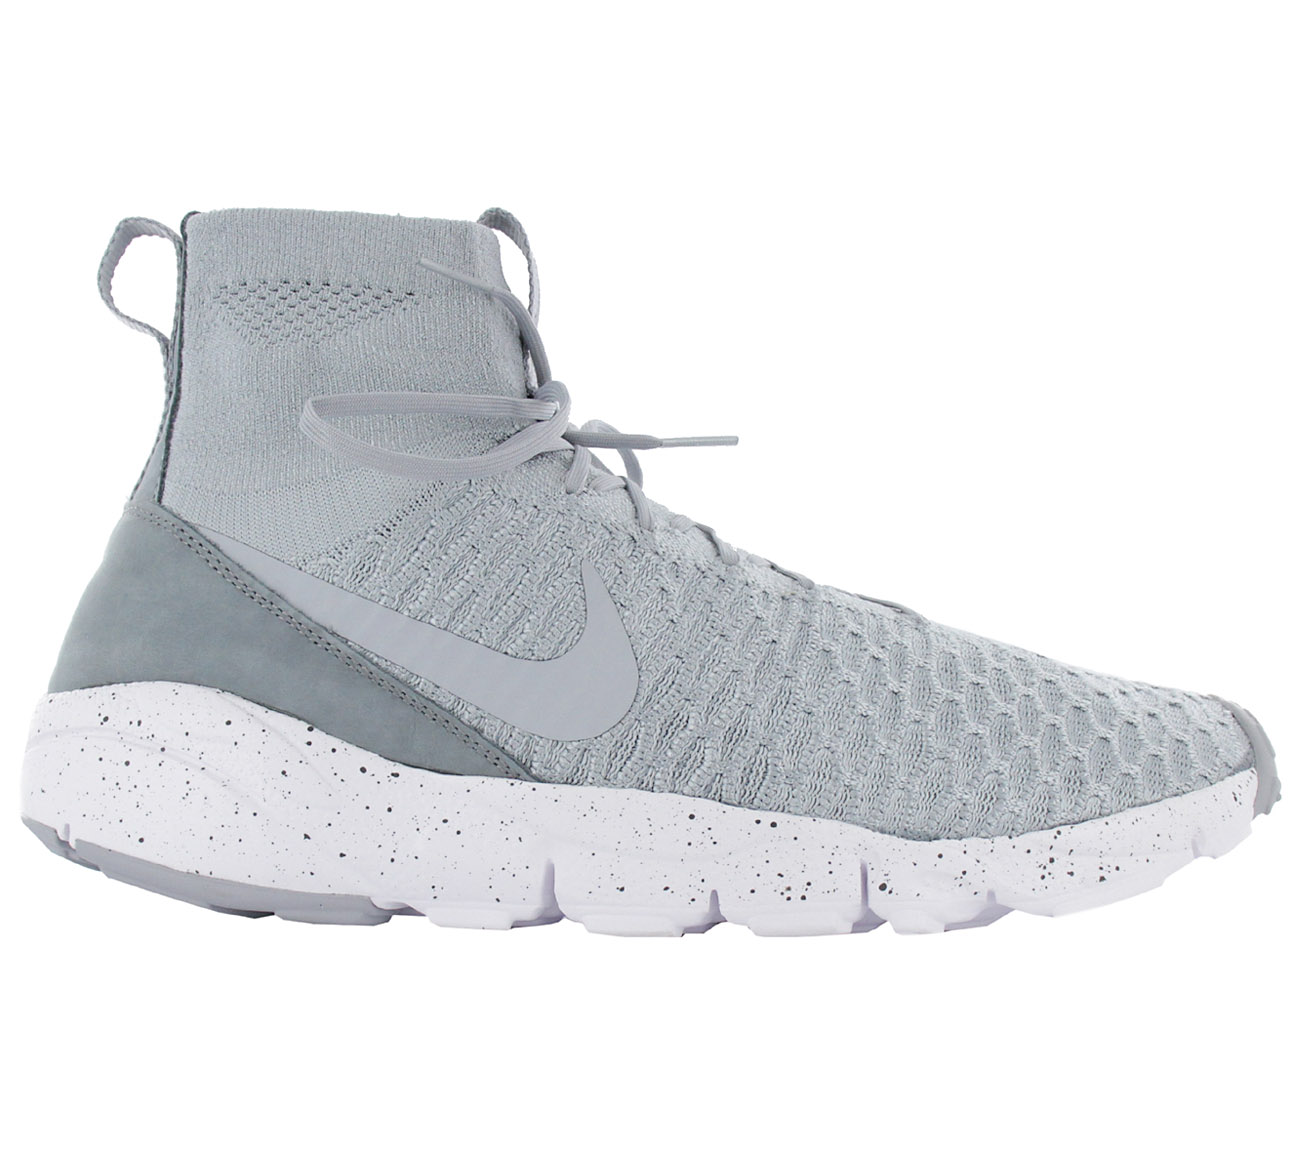 d99bd9ad9a79 Nike Men s Sneakers Air Footscape Magista Flyknit Shoes Grey 816560 ...